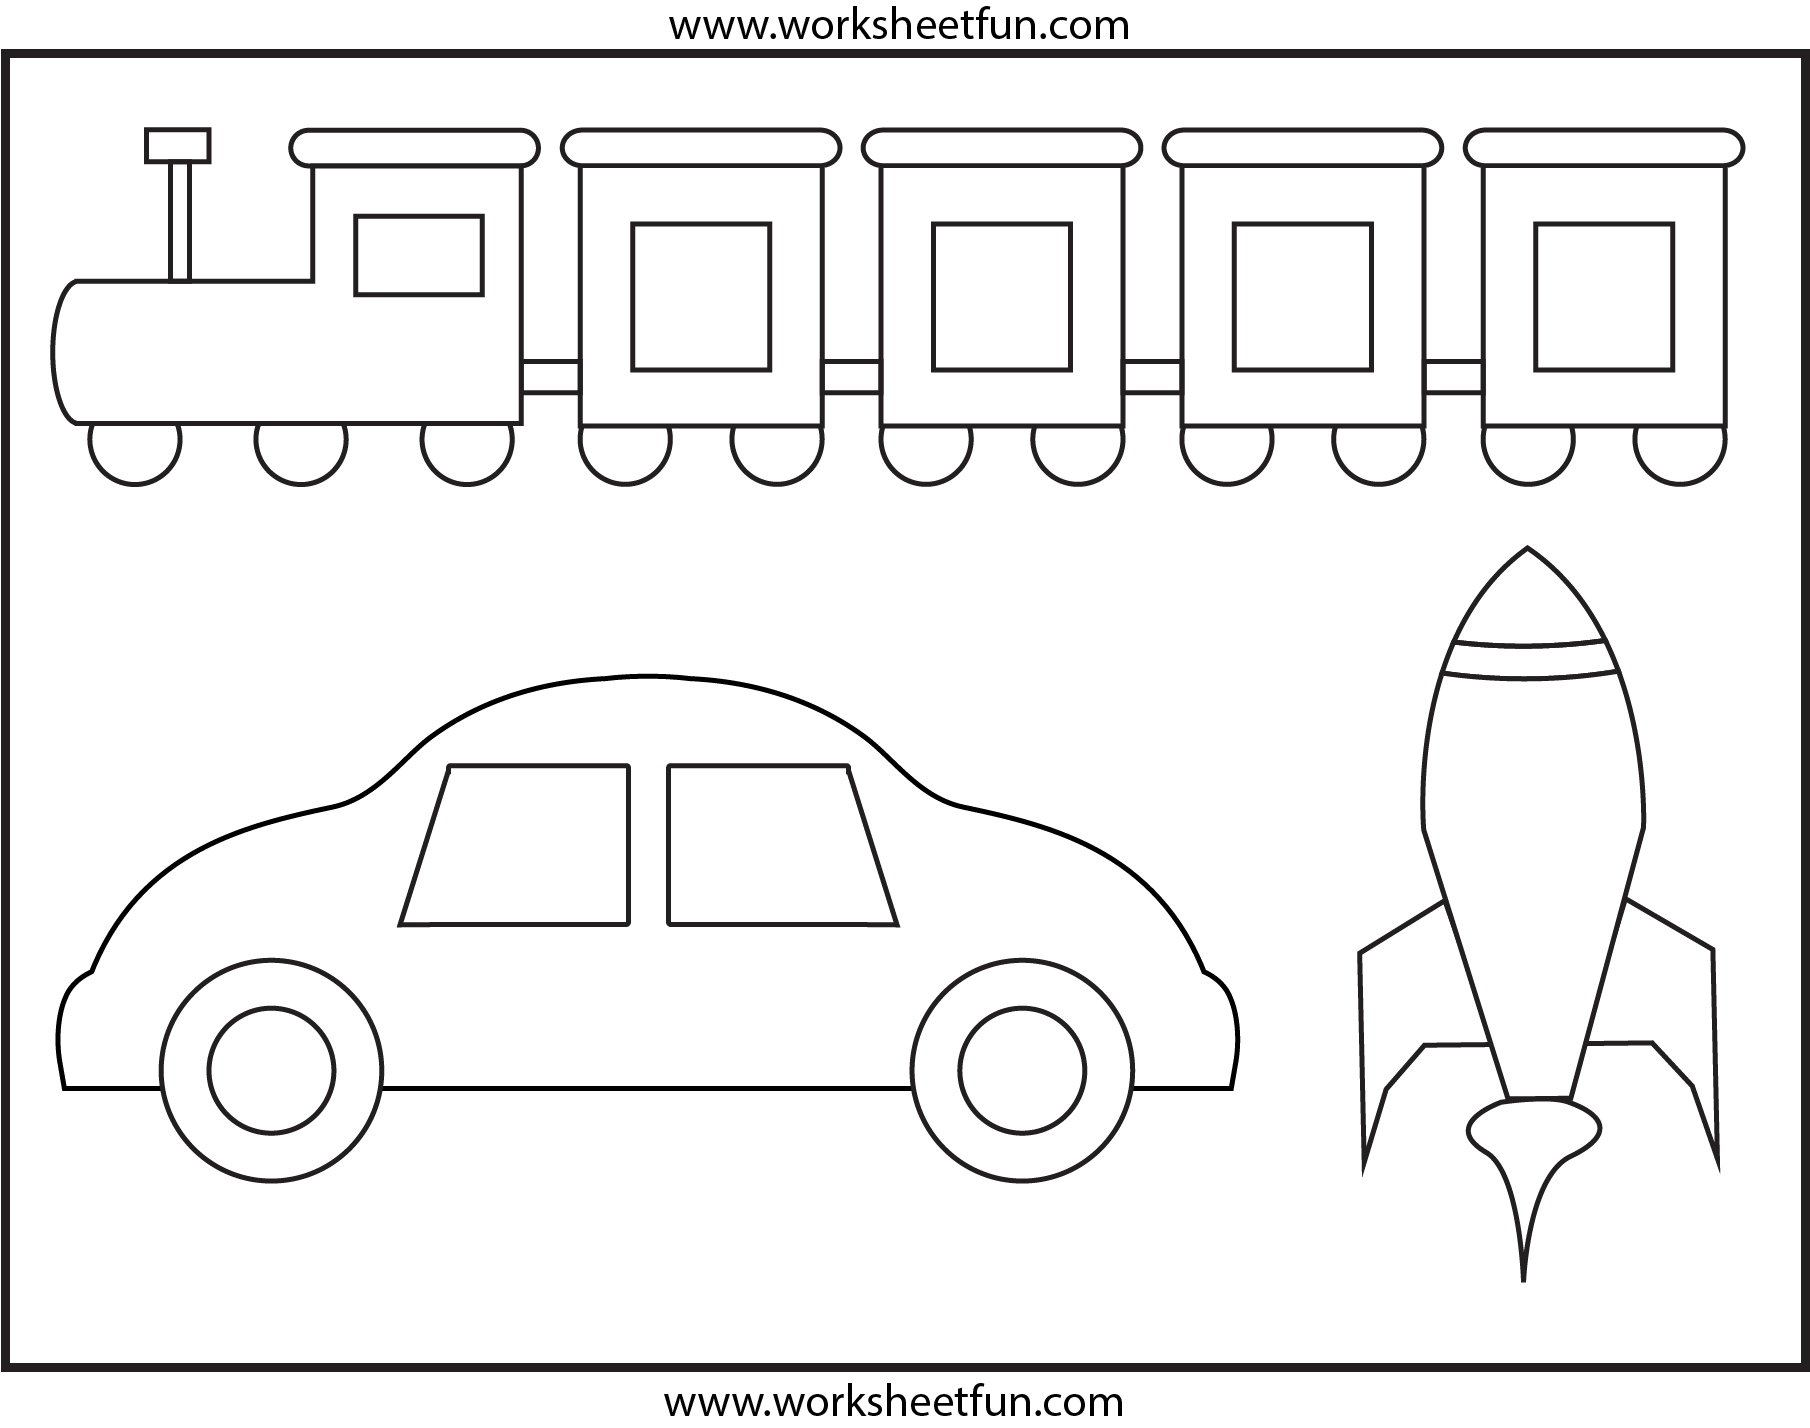 coloring worksheet transportation preschool worksheets pinterest coloring worksheets. Black Bedroom Furniture Sets. Home Design Ideas